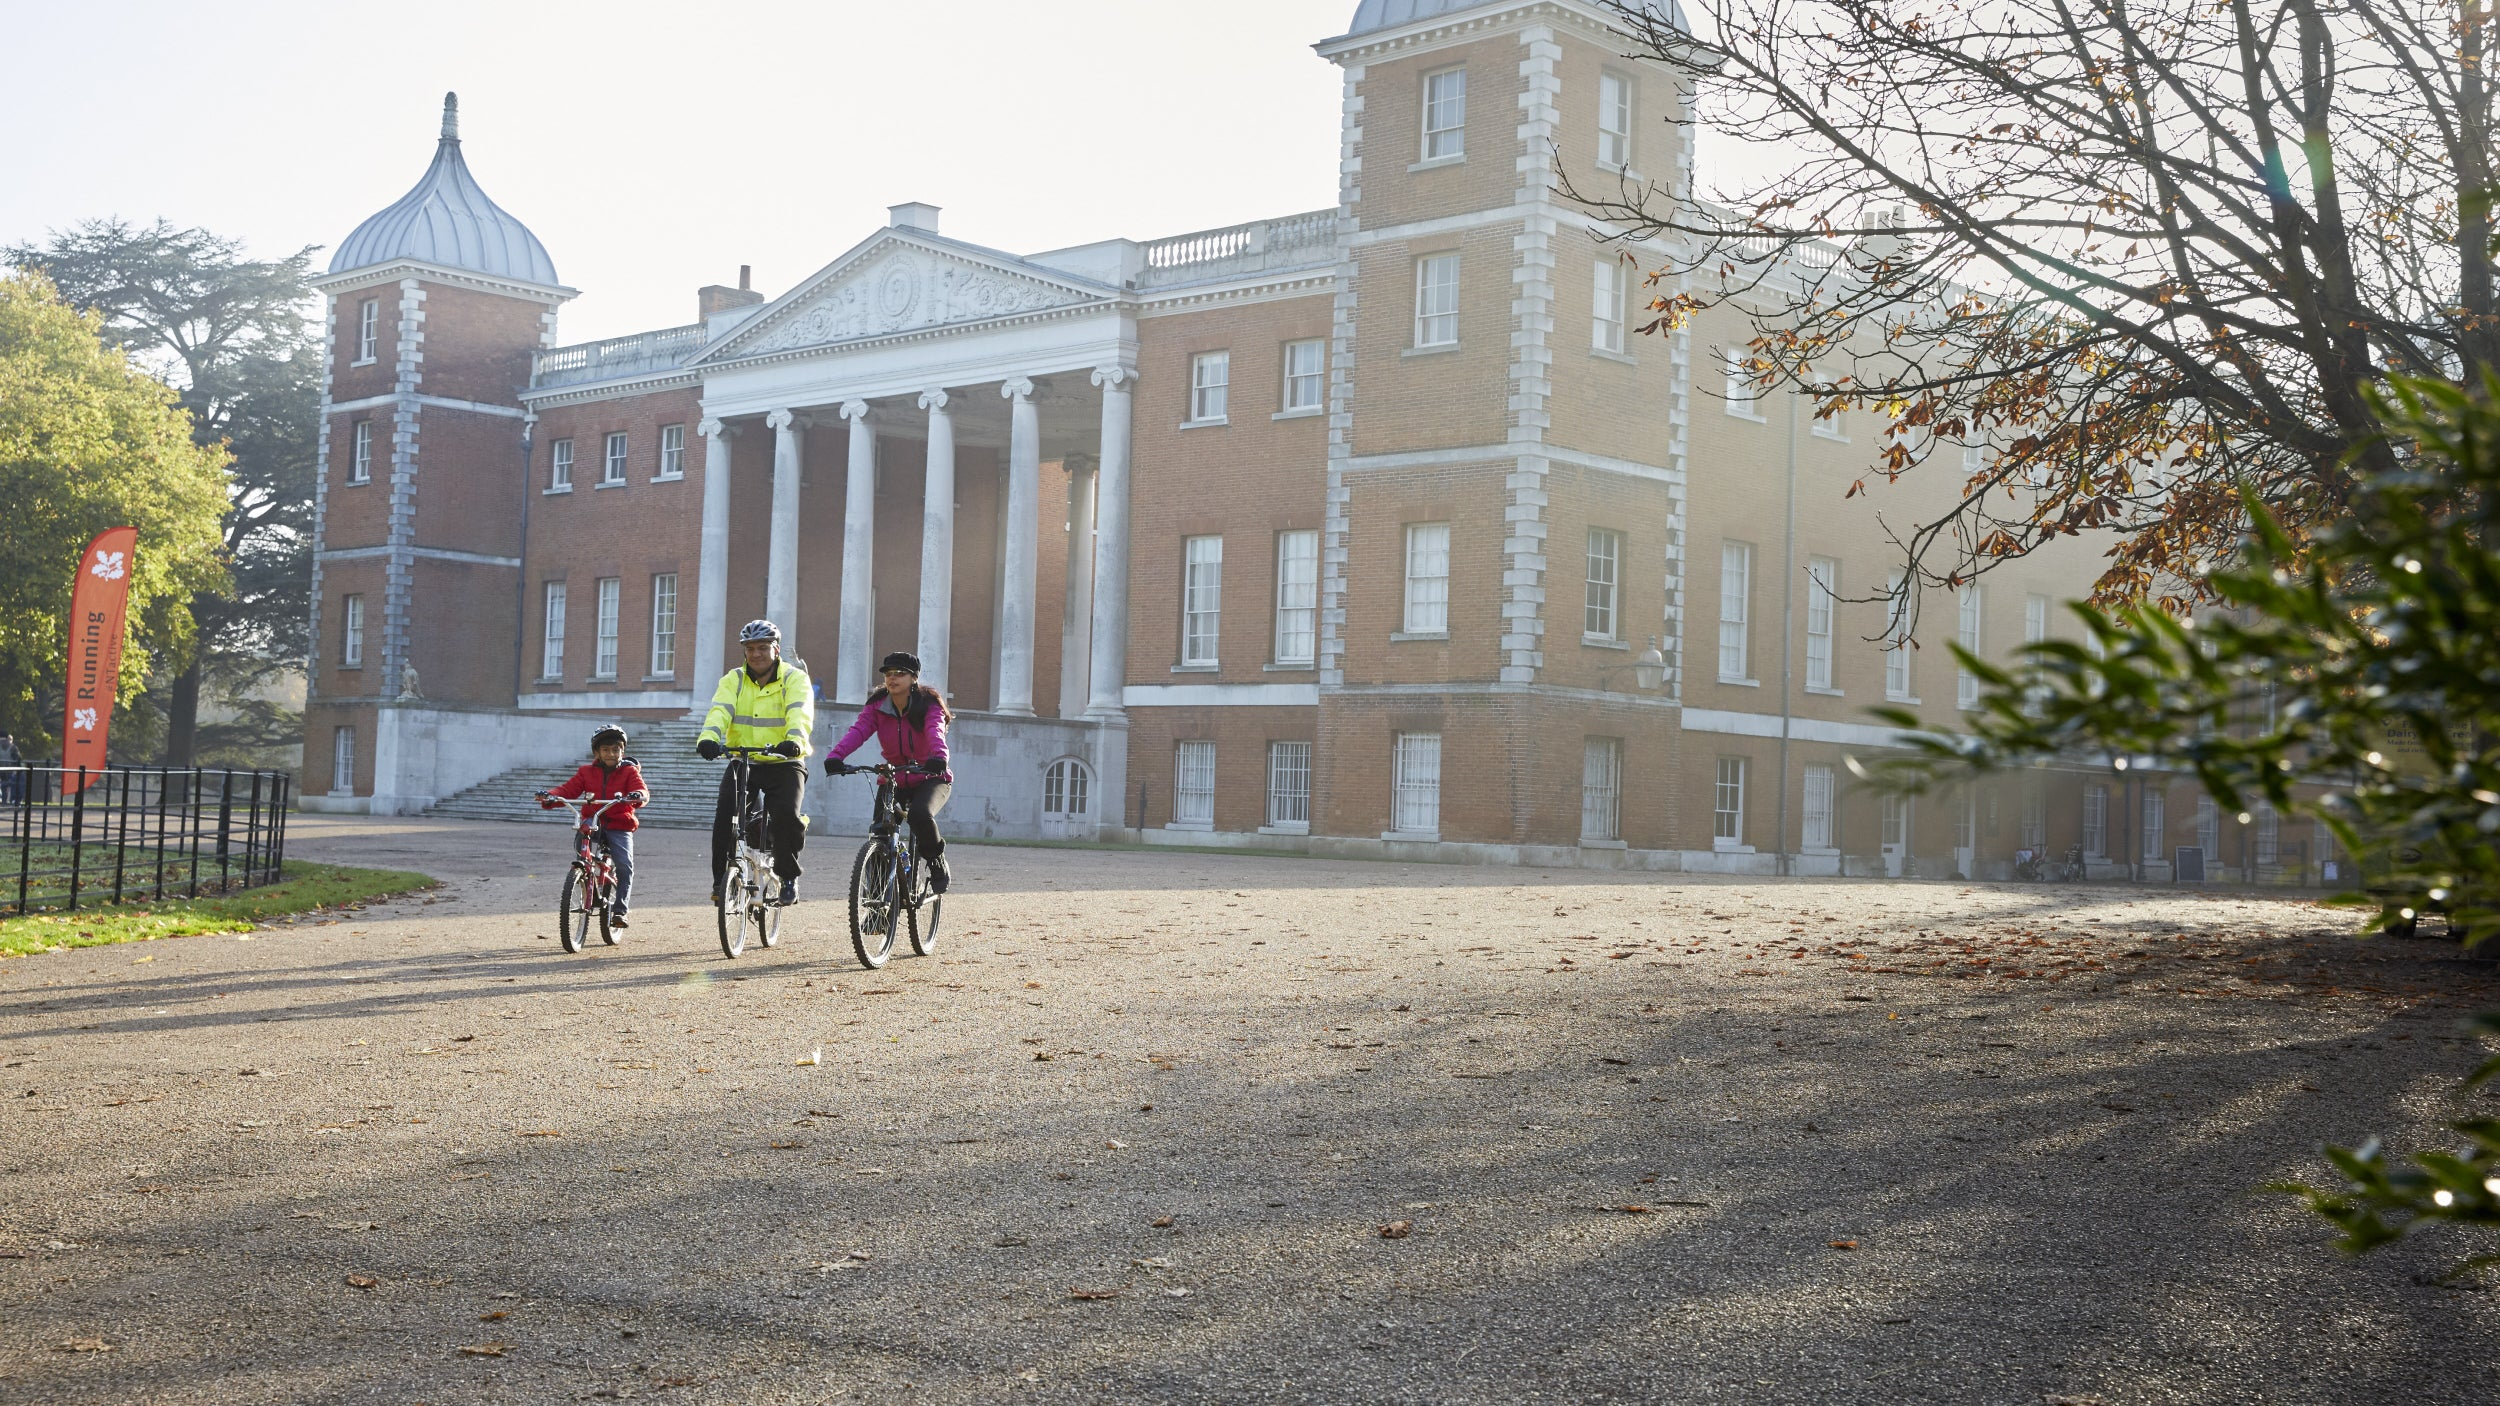 Family cycling at Osterley